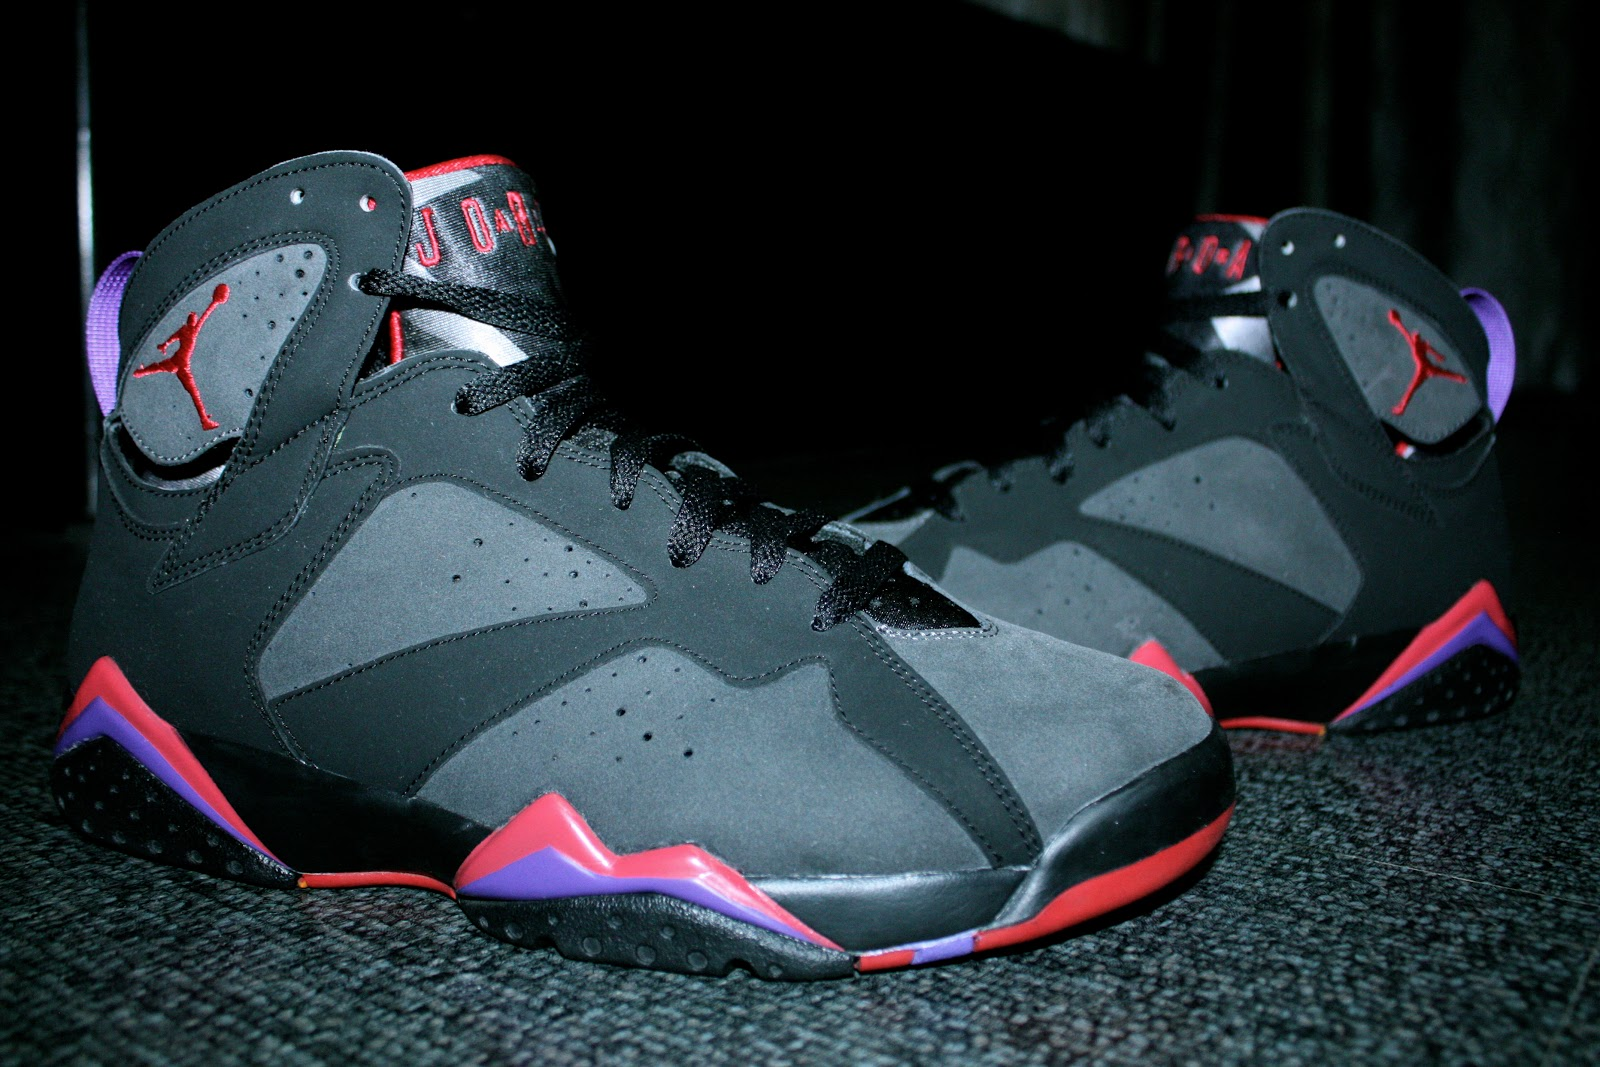 c664282ed8c6 The Hype Spot   Air Jordan VII DMP Raptor